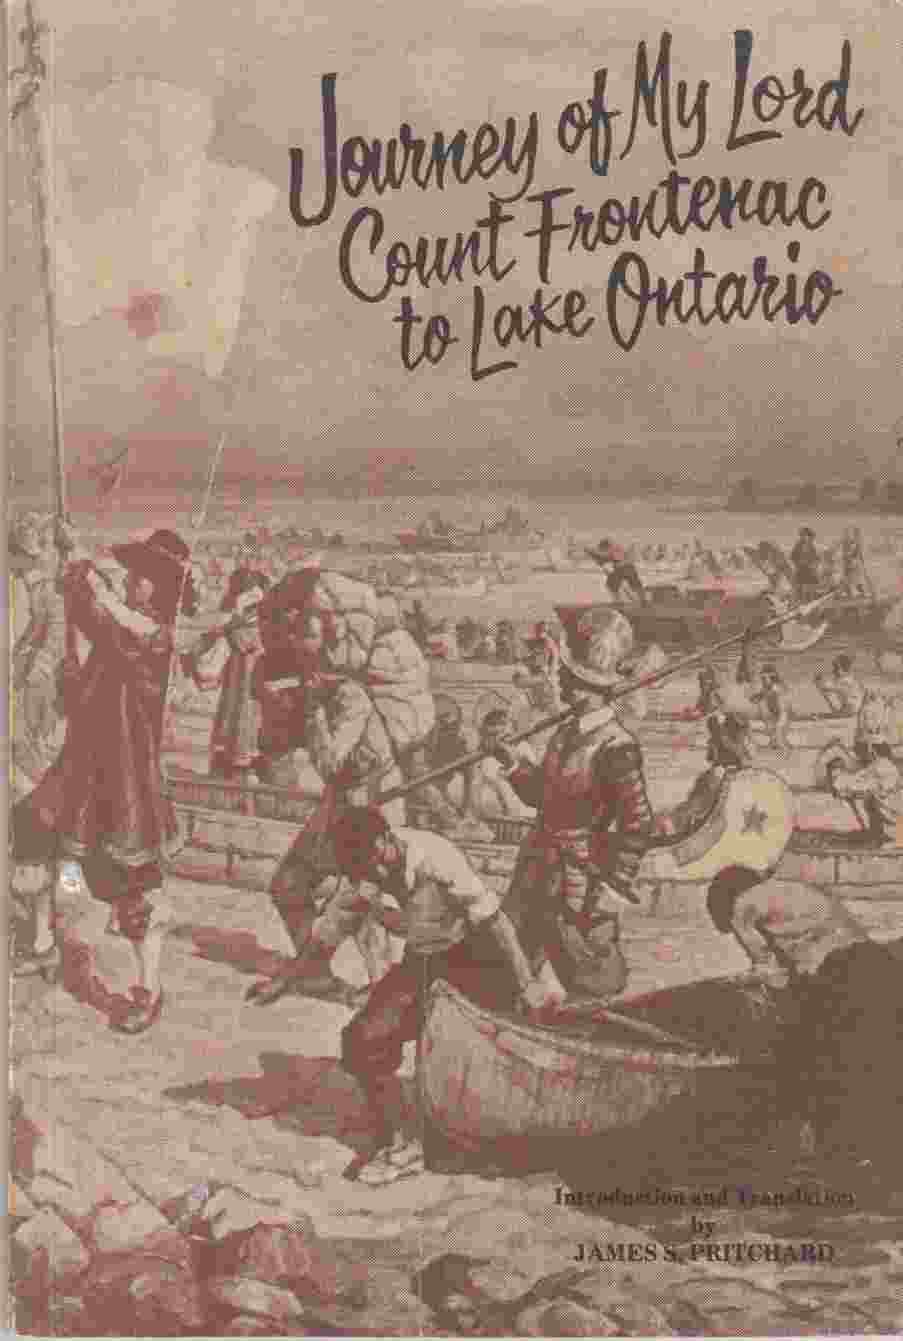 Image for Journey of My Lord Count Frontenac to Lake Ontario in 1673 Voyage De Monsieur Le Comte De Frontenac Au Lac Ontario En 1673